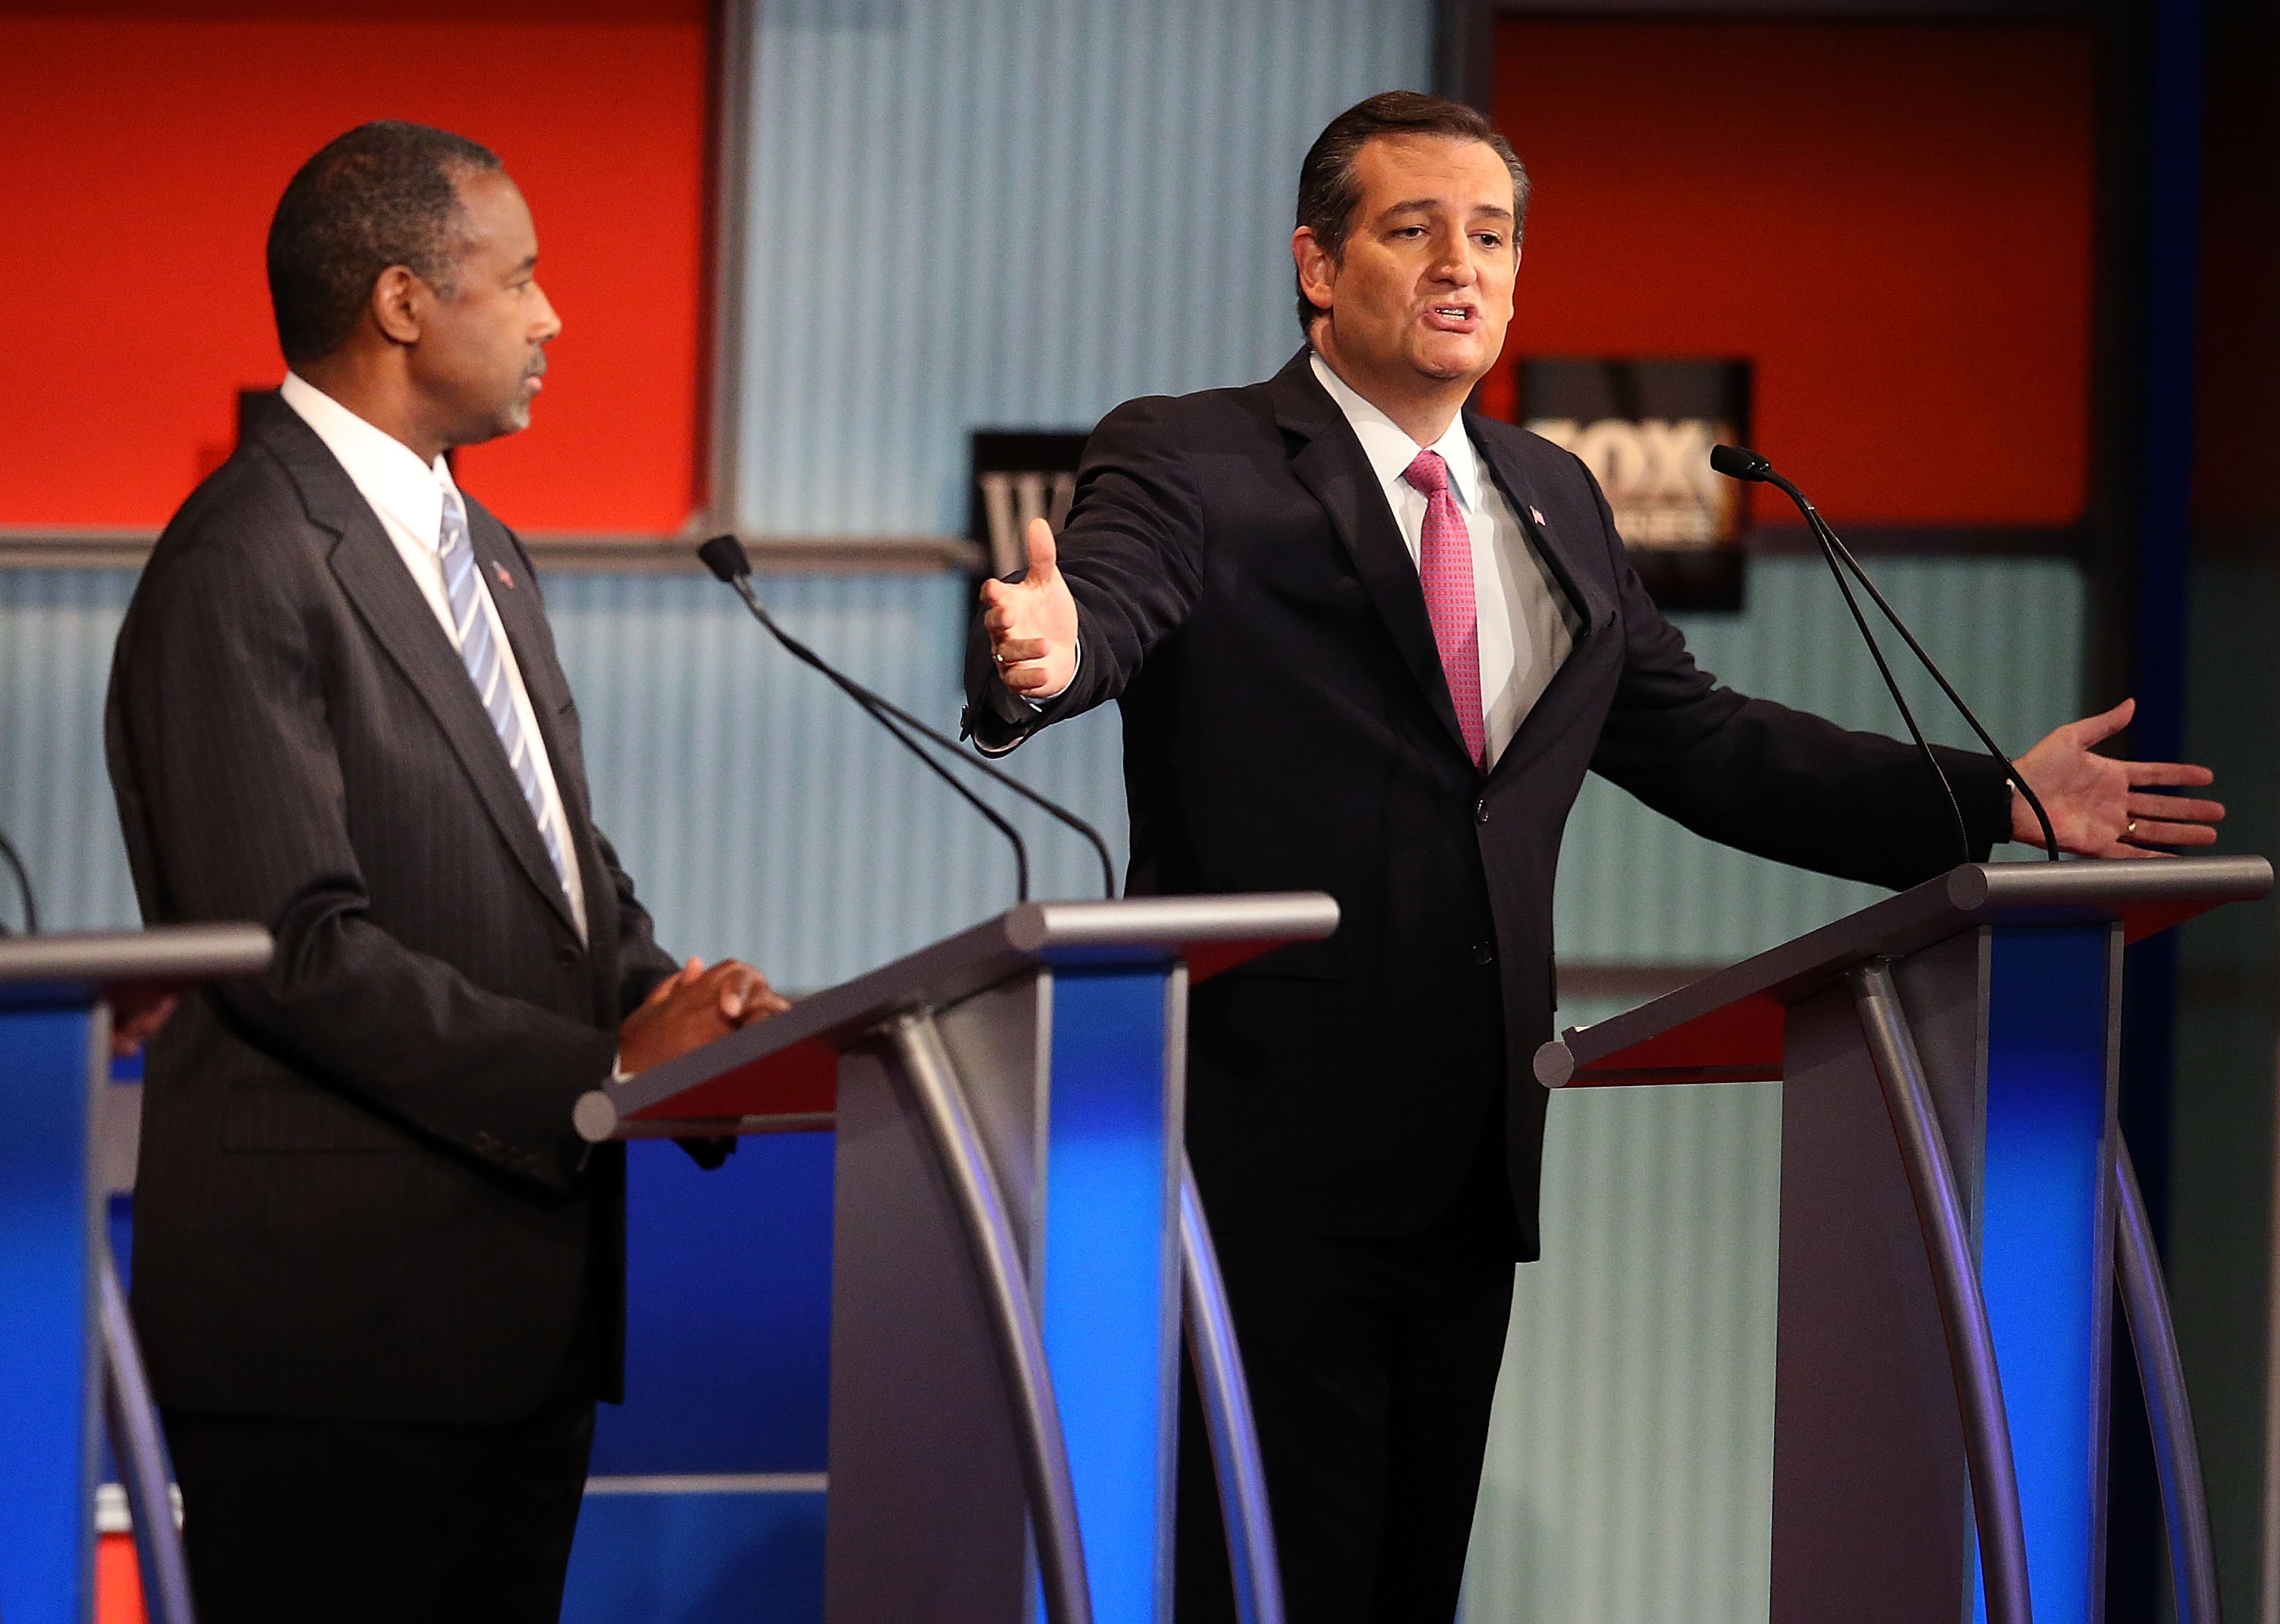 republicans candidates should moderate the democratic debate so it